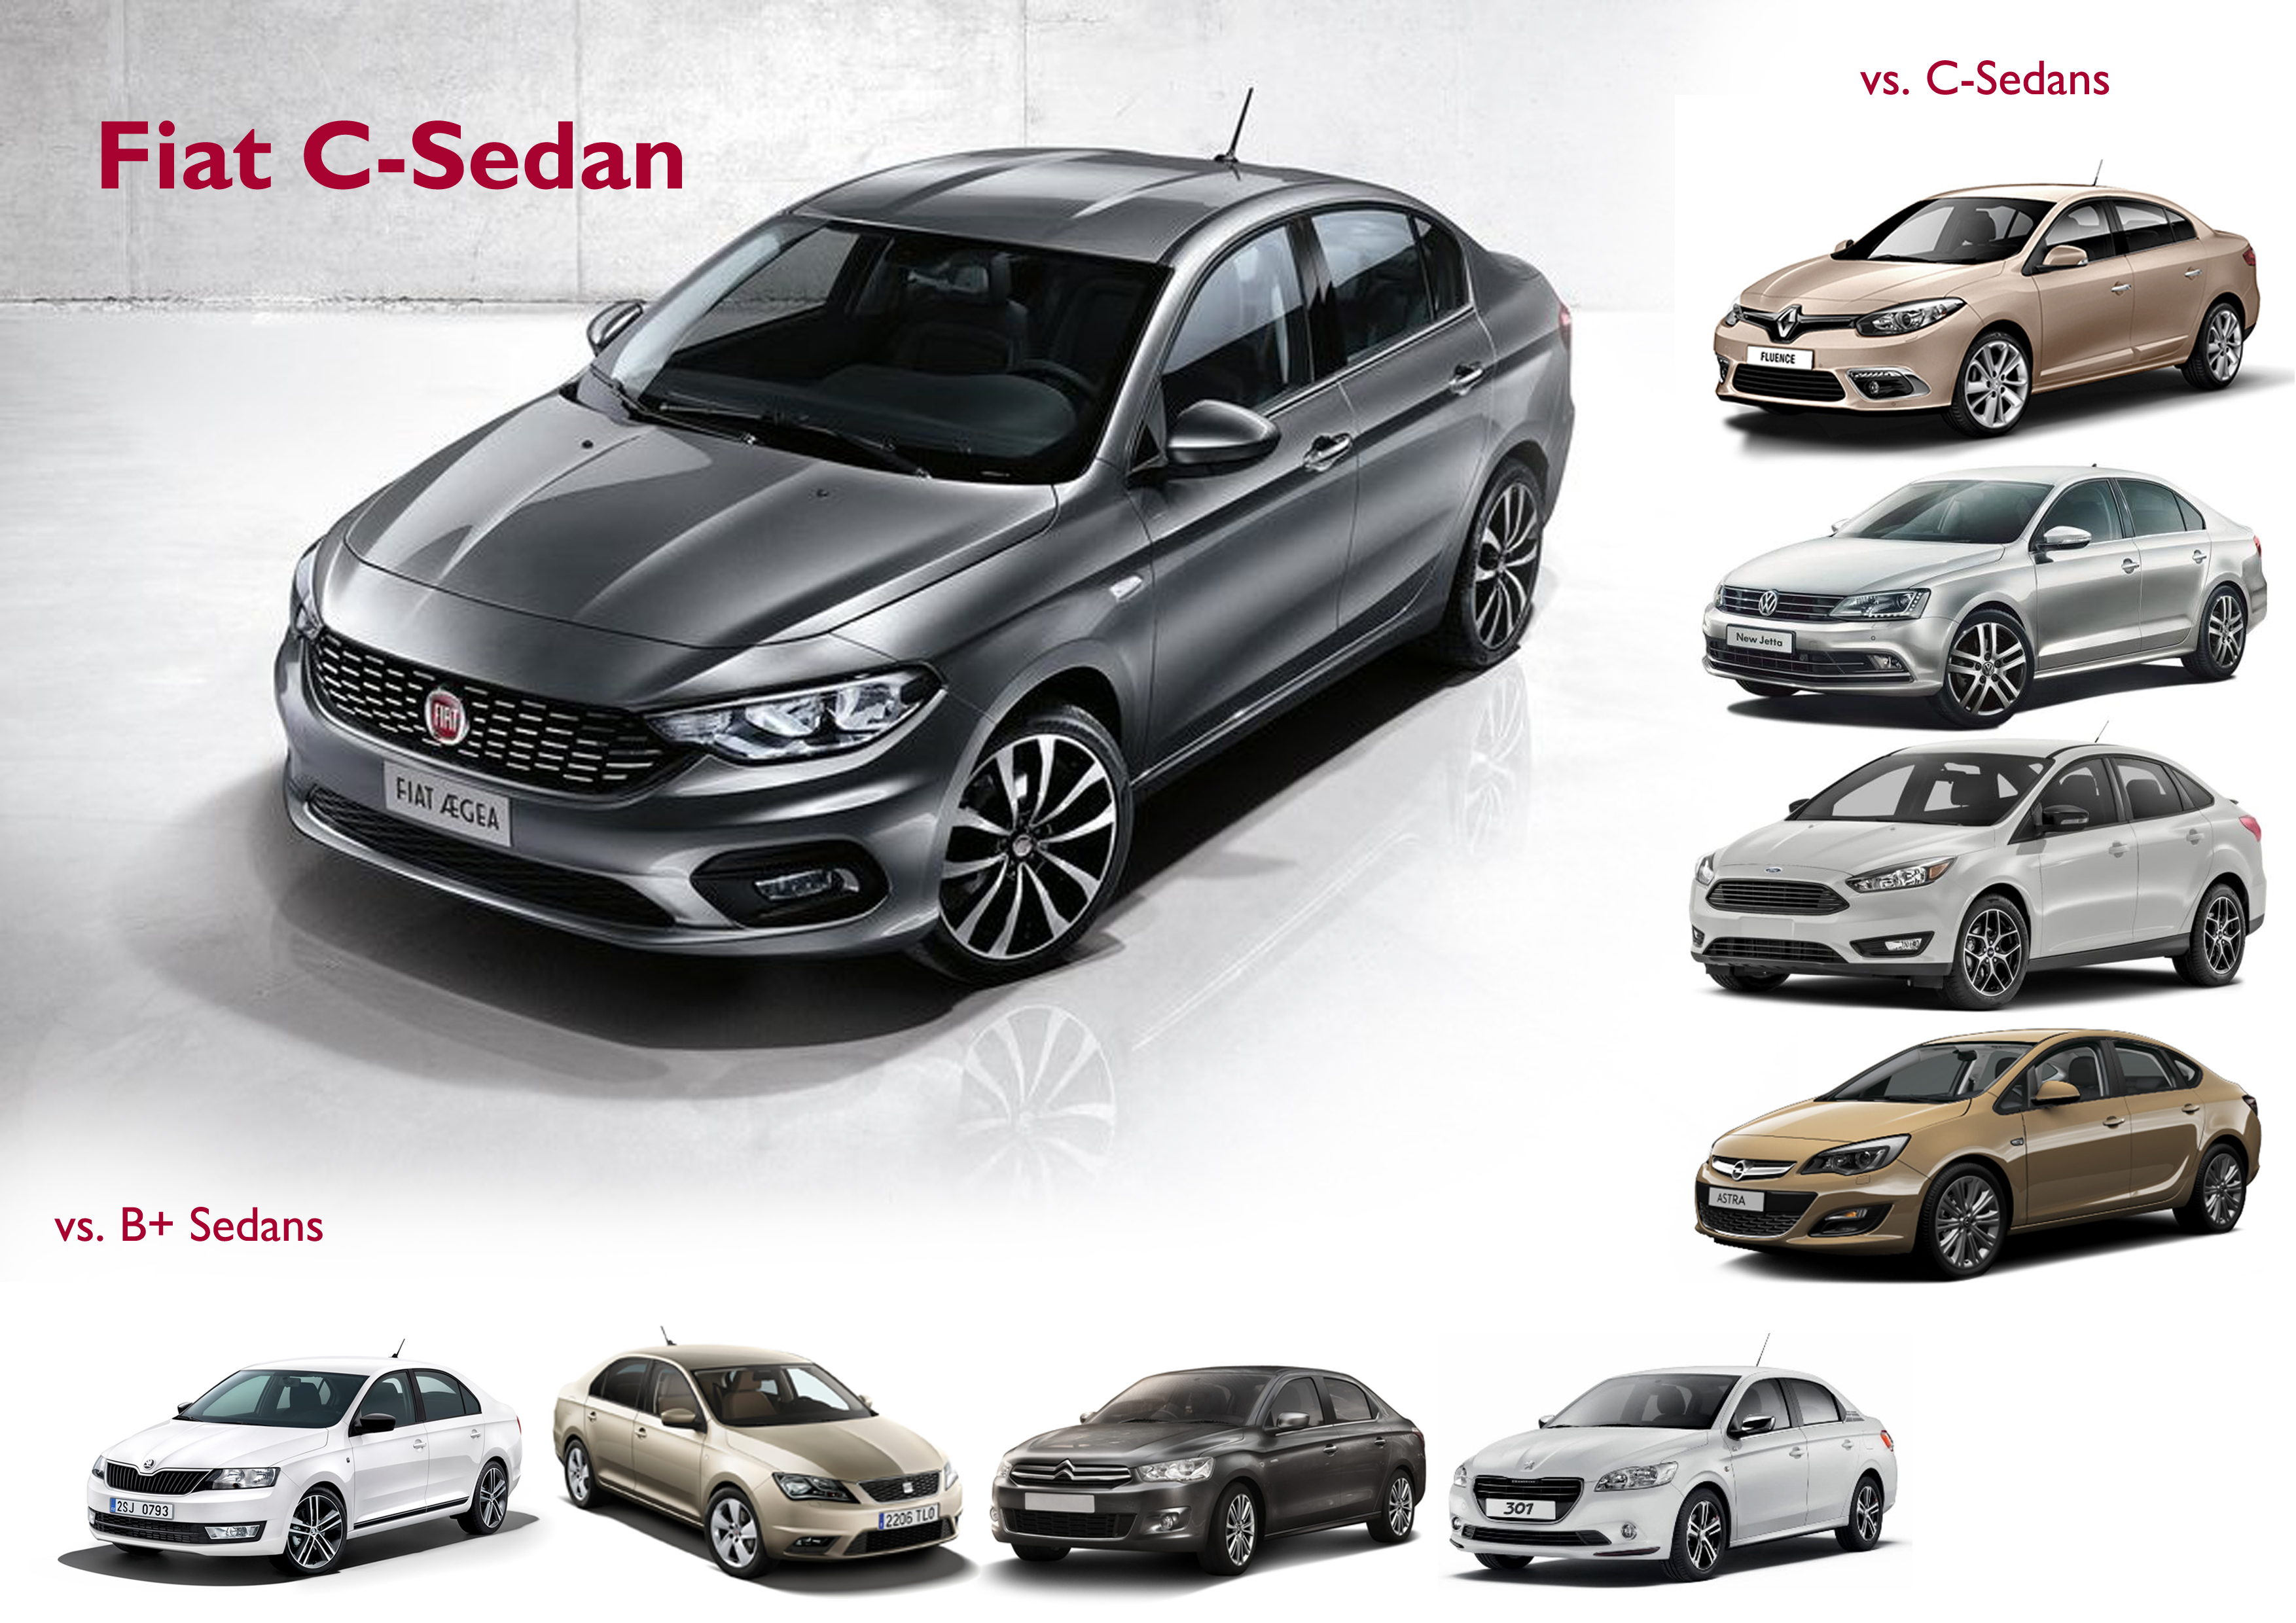 Fiat C-Sedan: a new car without a name | Fiat Group's World